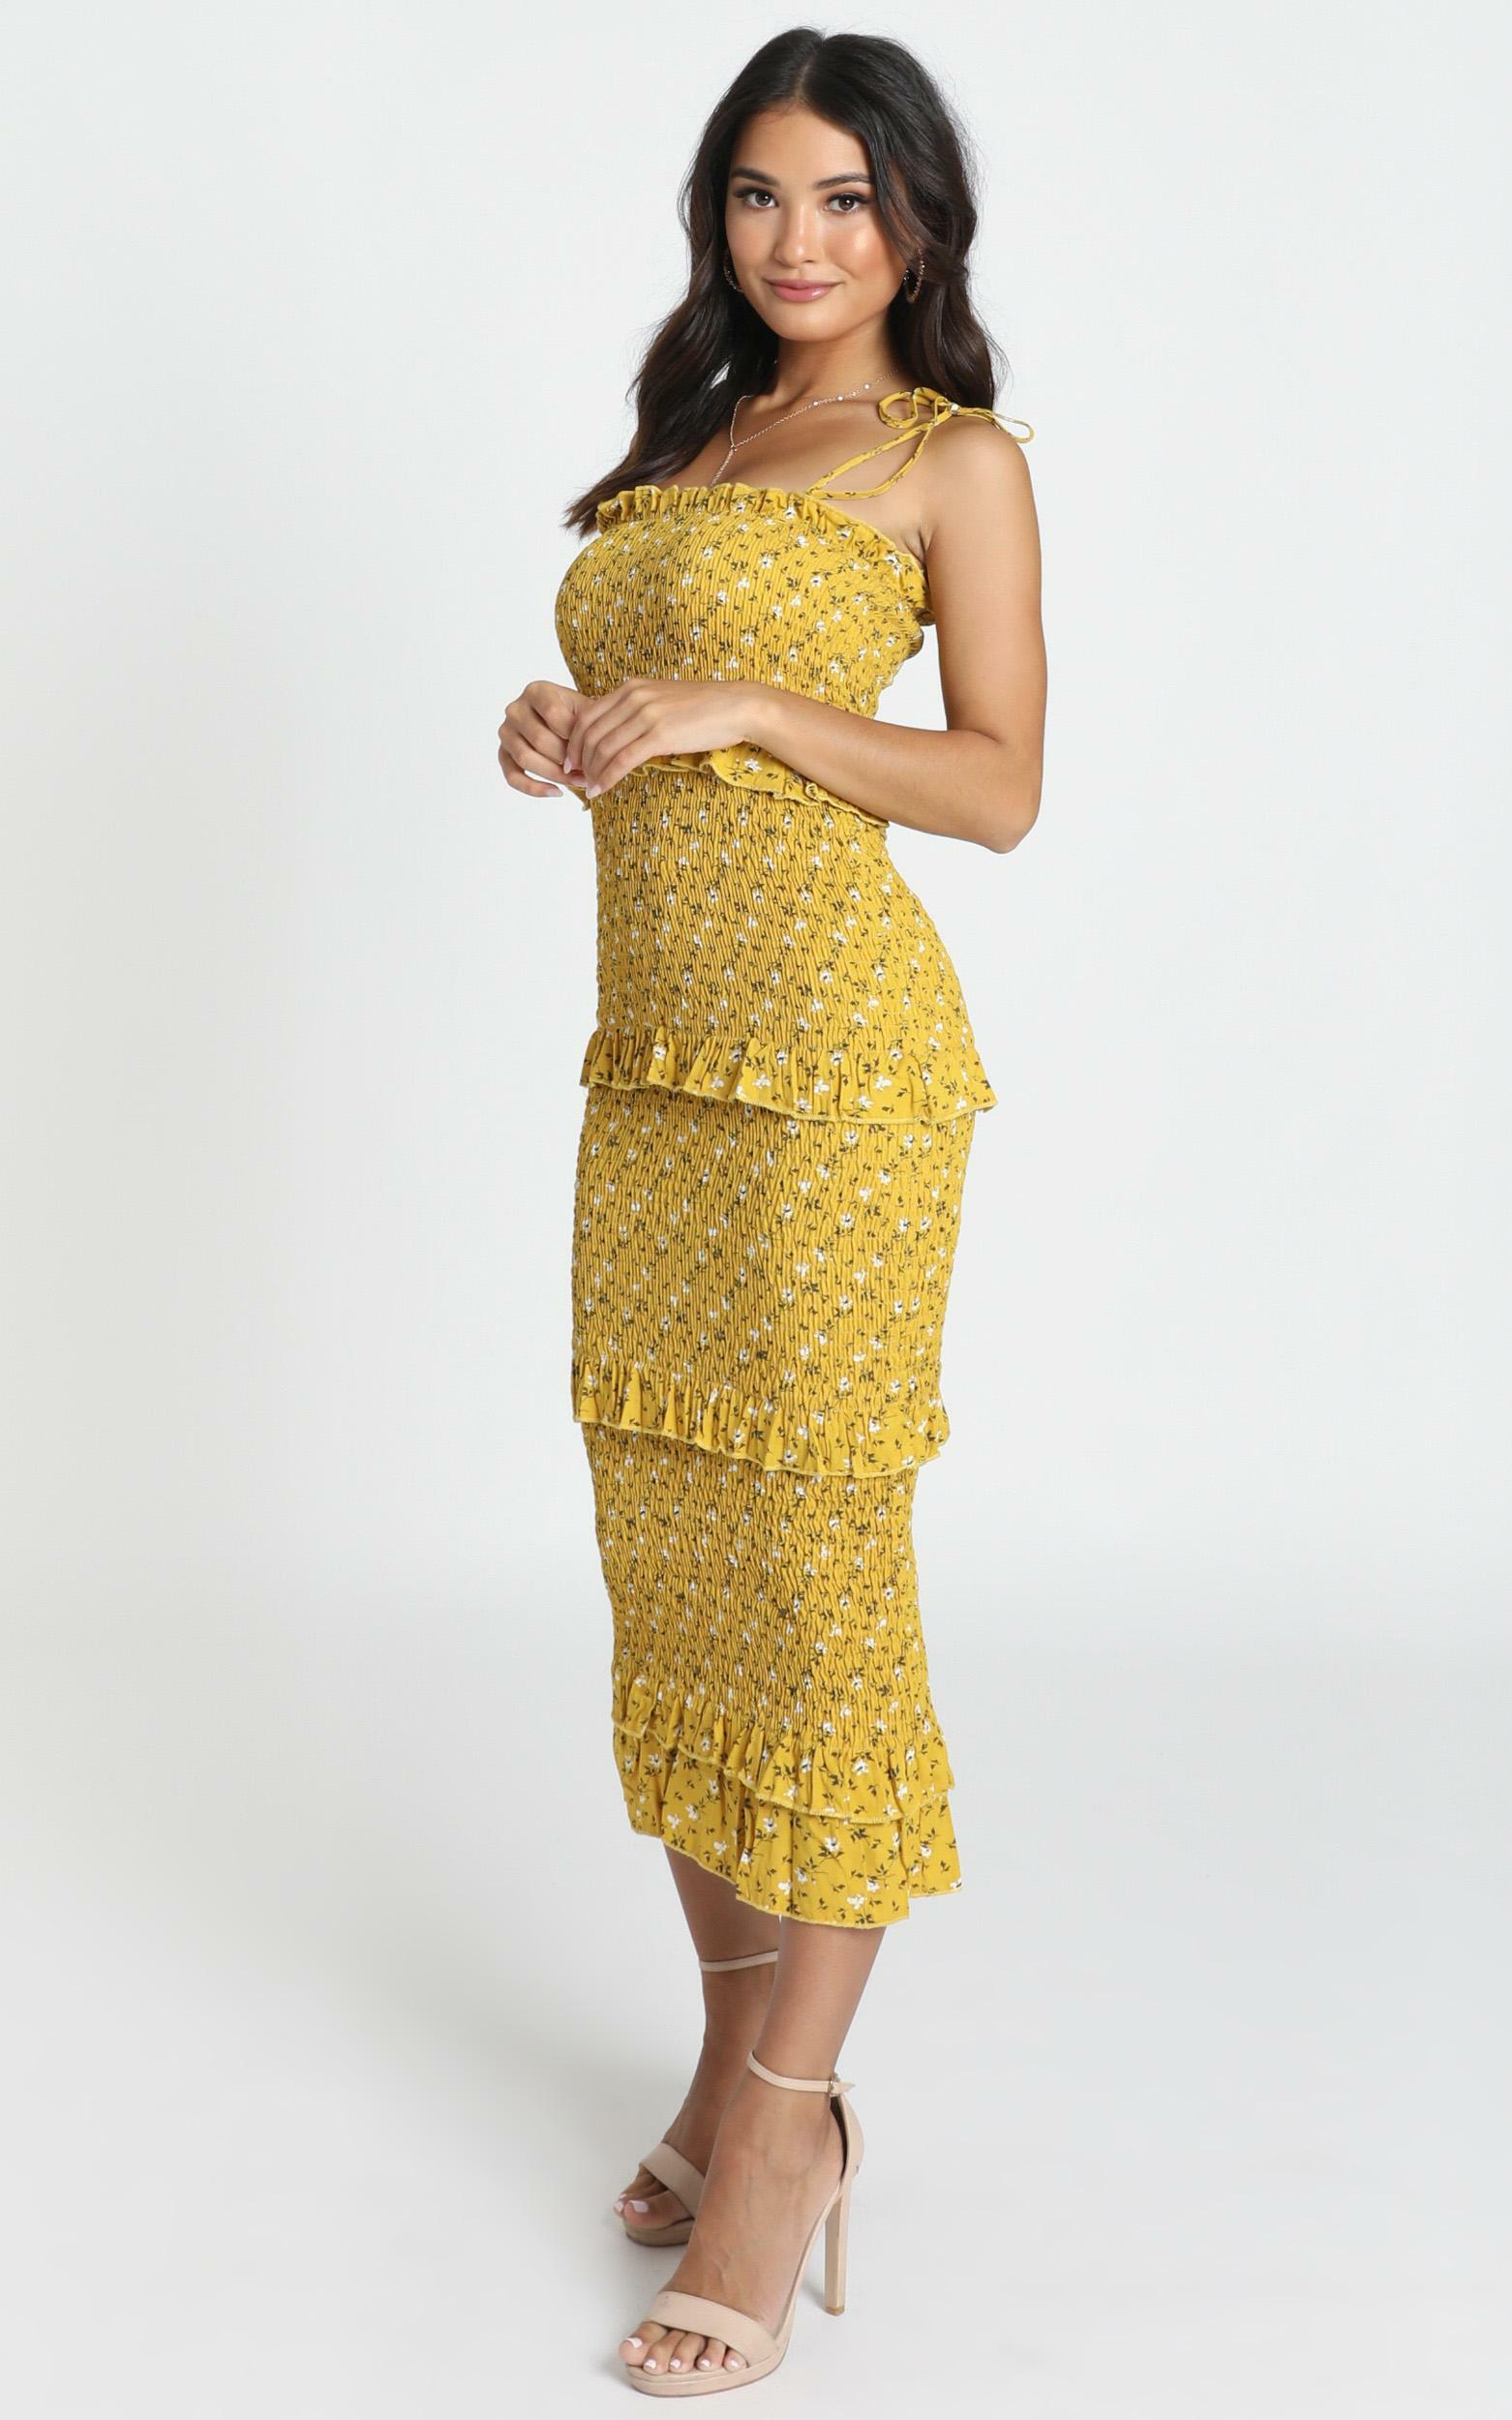 My Favourite Thing Shirred Midi Dress in mustard floral - 6 (XS), Mustard, hi-res image number null